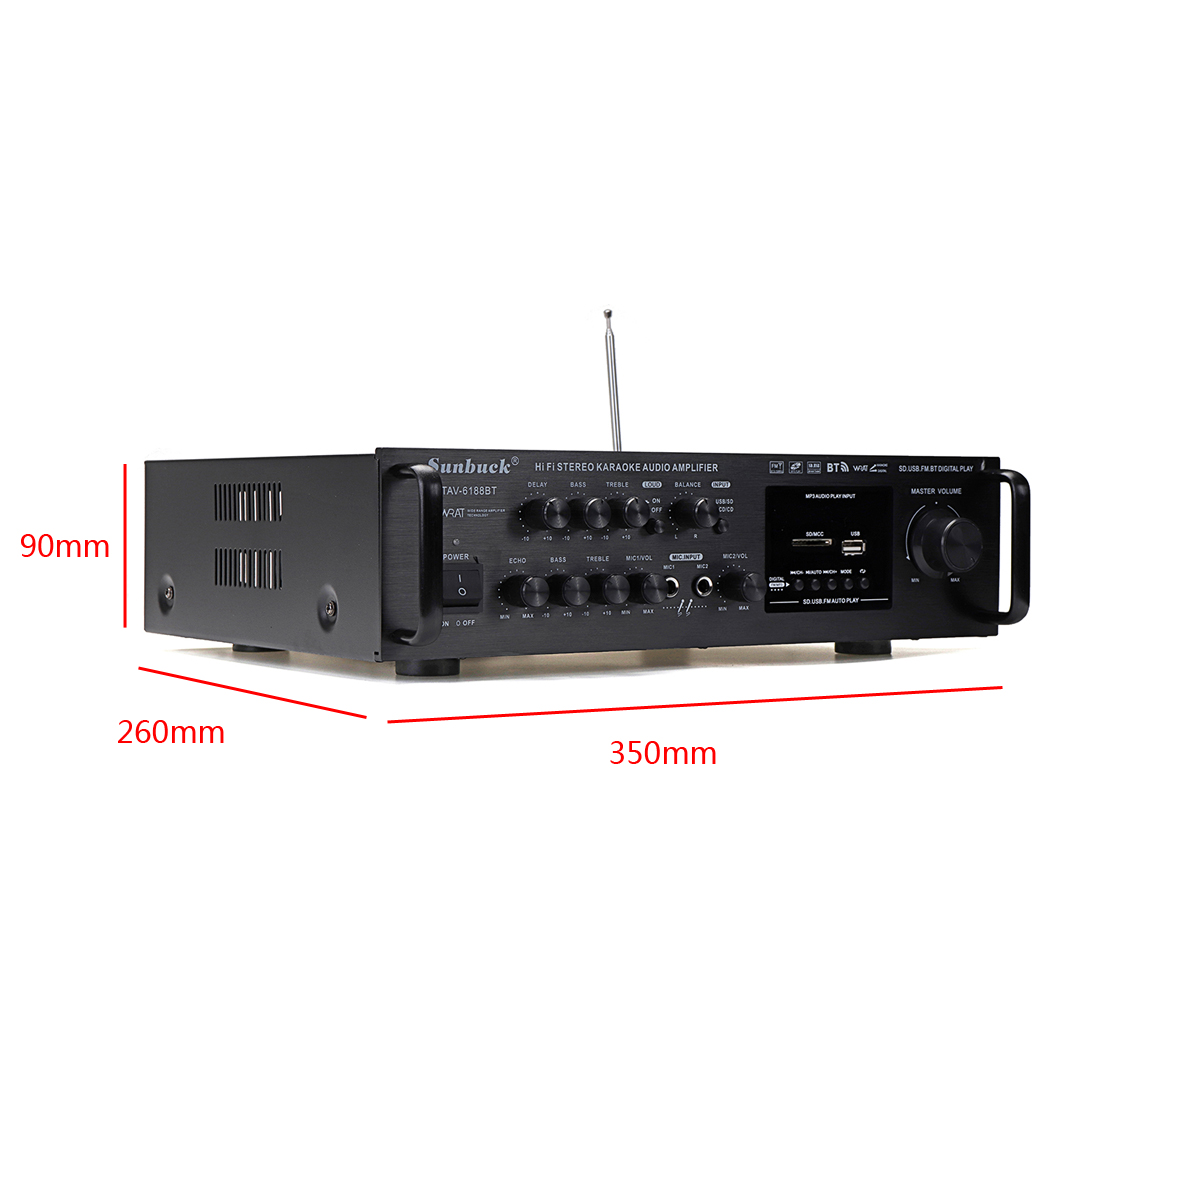 12V 220V High-power bluetooth LCD Display Audio Stereo Power Amplifier Home Car Amplifier